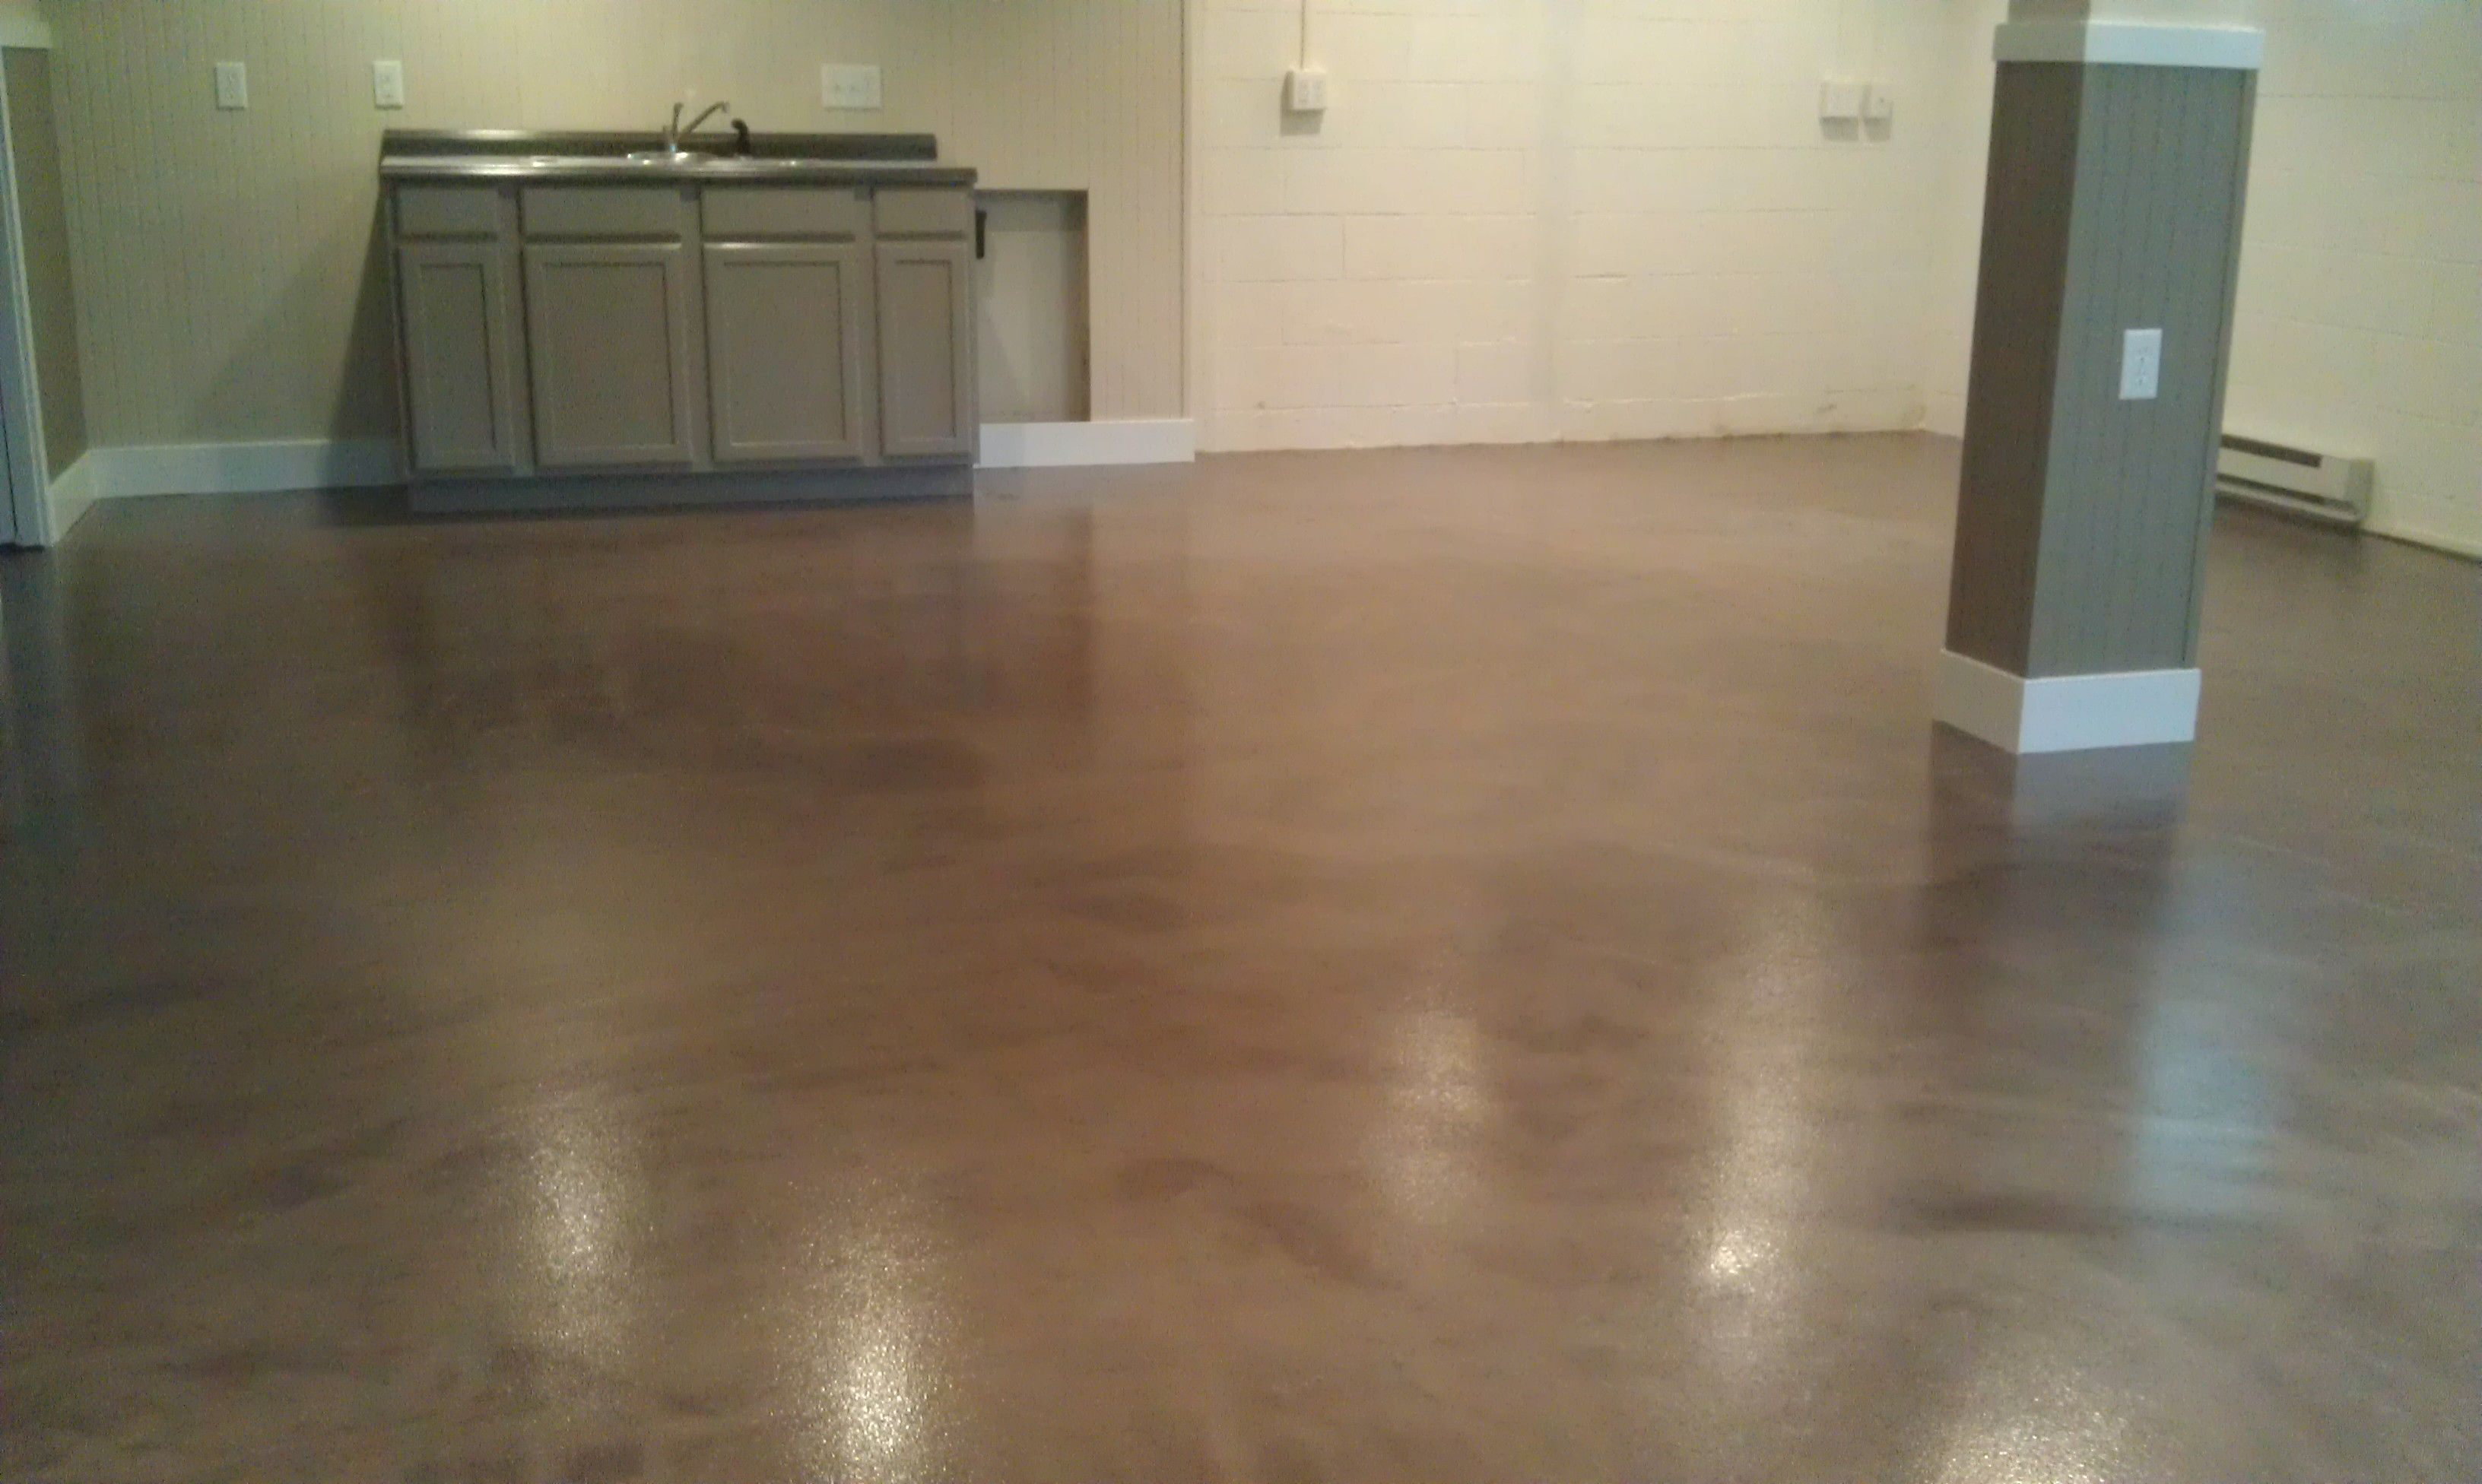 Basement Floor Faux Paint Picture Metallic Epoxy In Lancaster Pa Painting Basement Floors Epoxy Floor Epoxy Basement Floor Paint